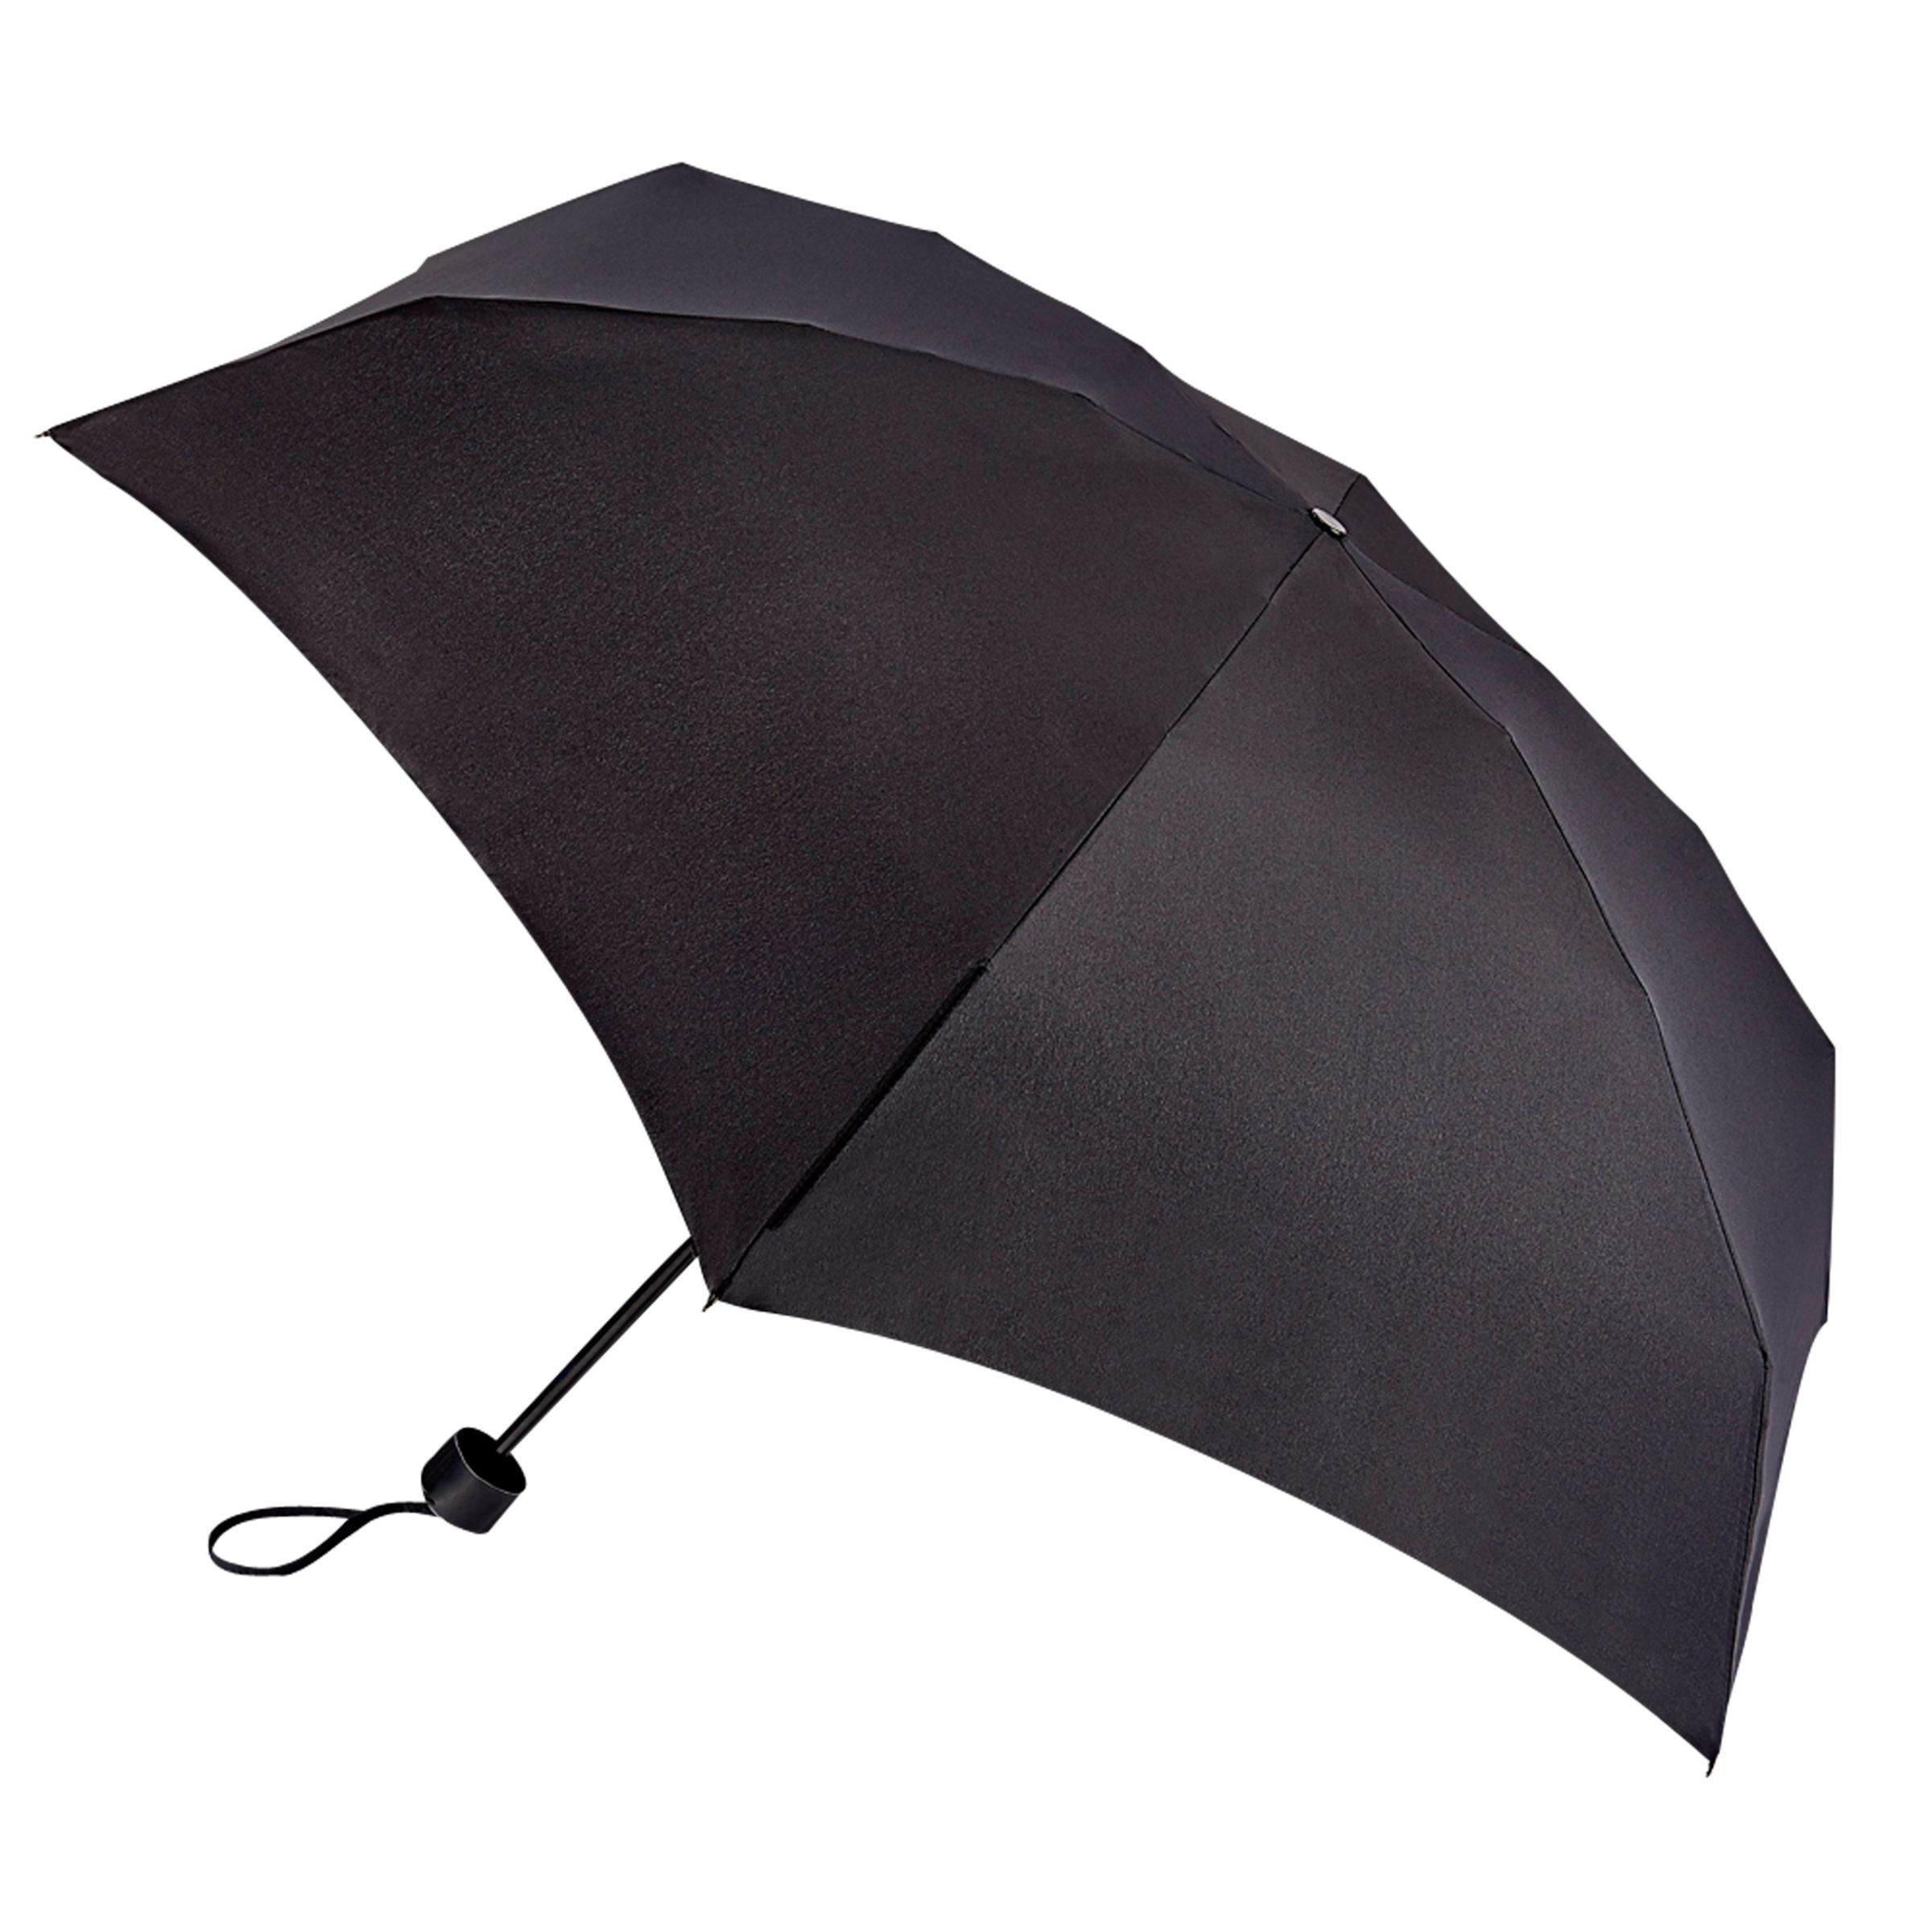 Fulton Fulton Round Umbrella, Black